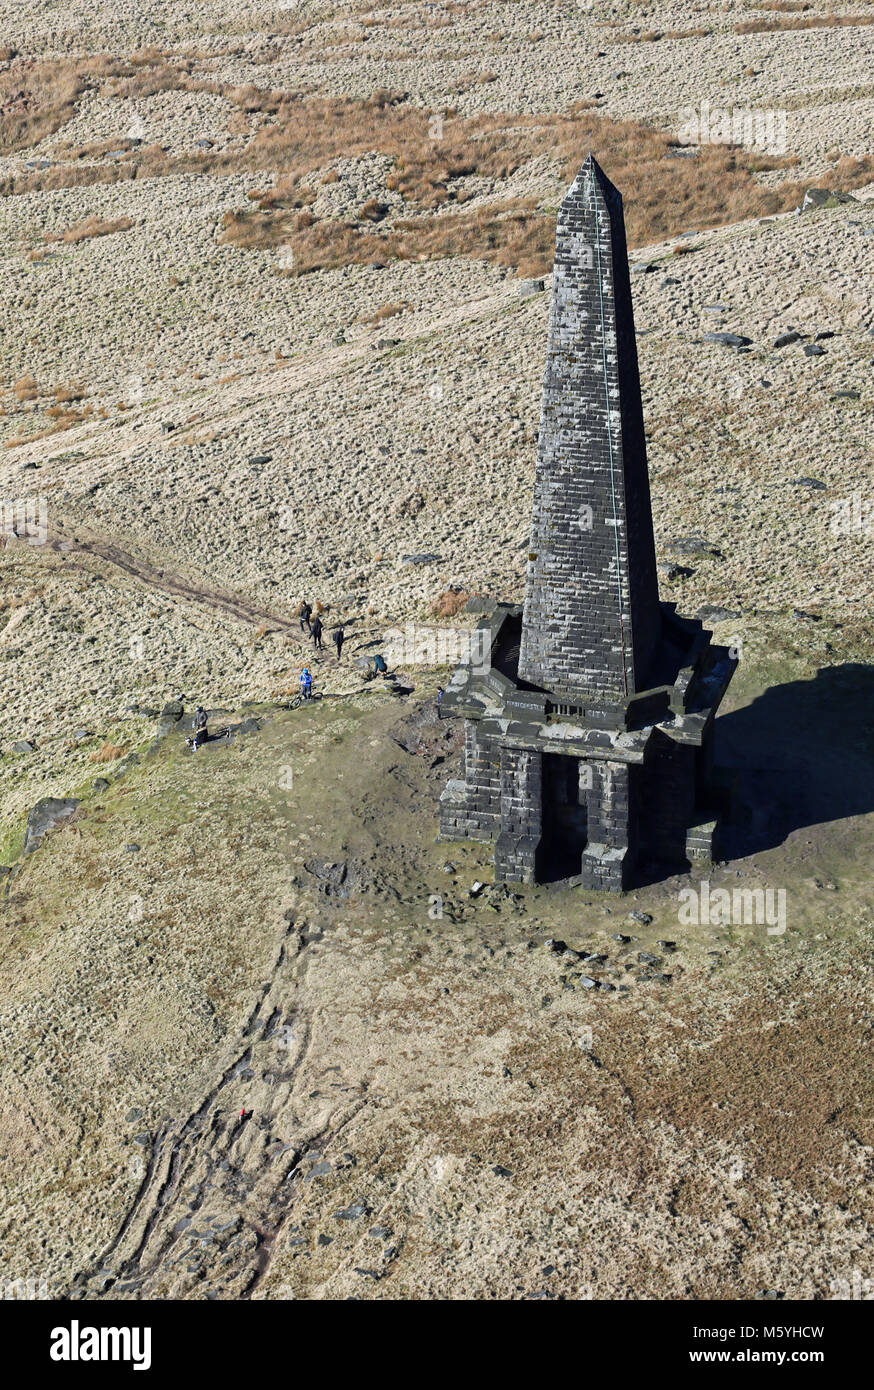 aerial view of walkers next to Stoodley Pike Monument, Todmorden, Lancashire, UK - Stock Image